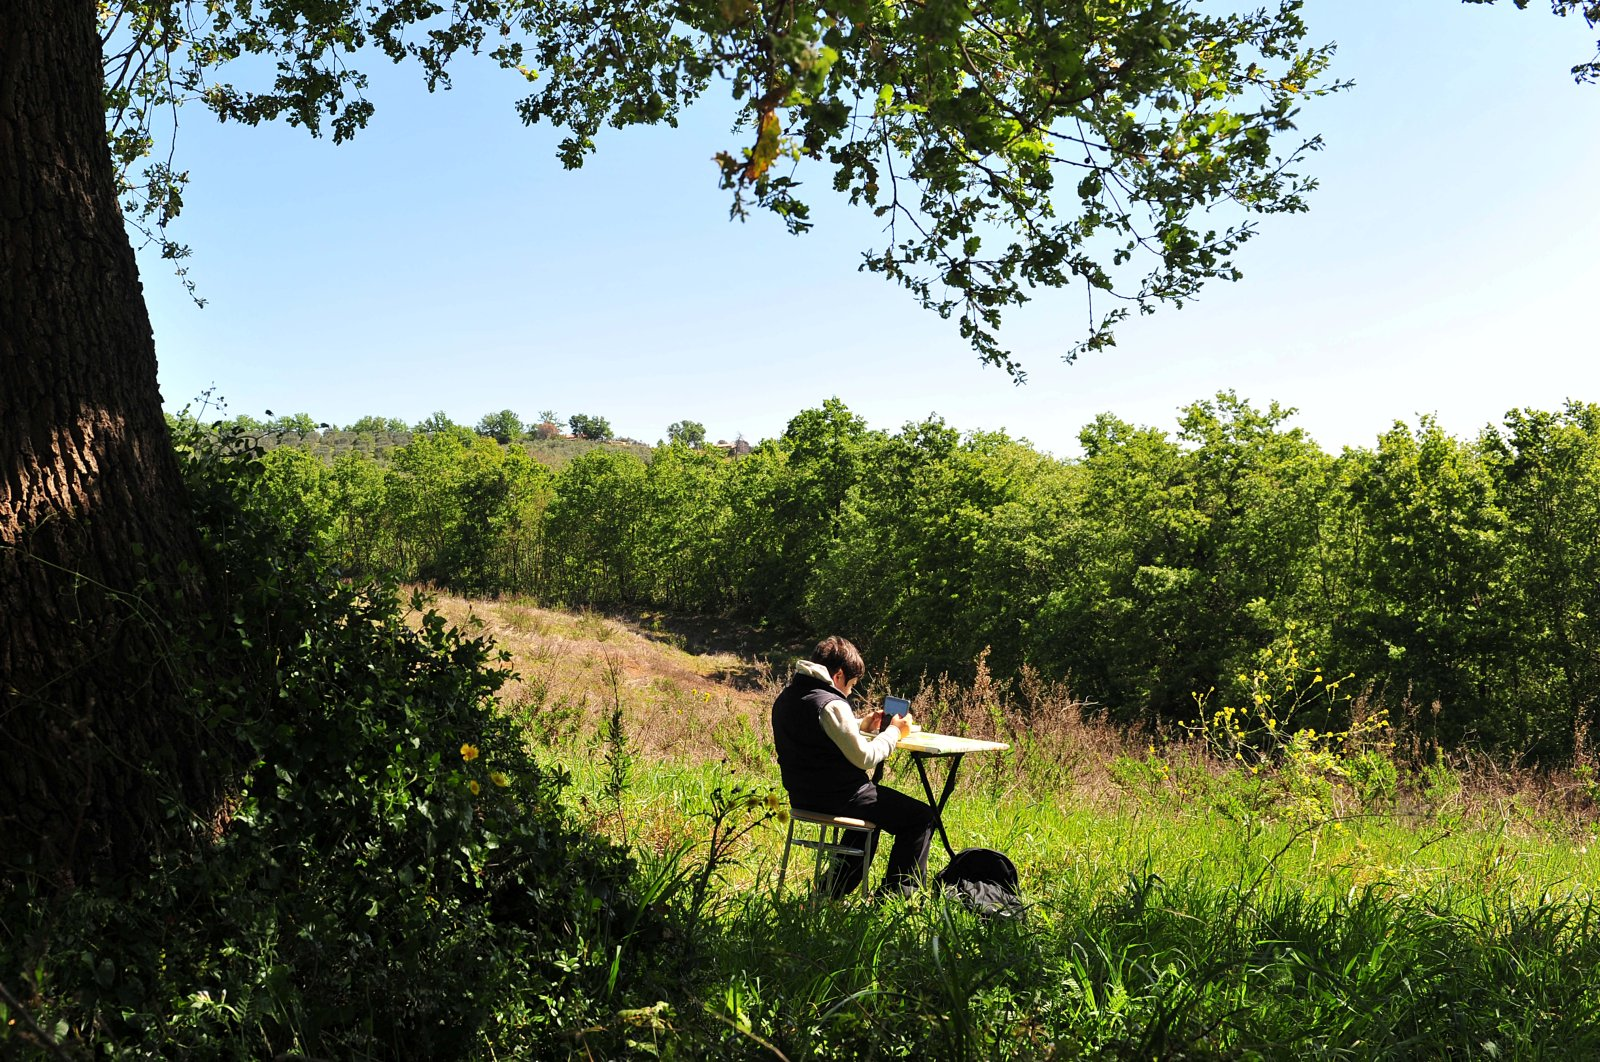 Giulio Giovannini, 12, with a tablet, a small camping table and a chair, studies on the top of a hill where he is able to access the internet so that he can participate in online lessons while the schools remain closed due lockdown, in Scansano, Italy, April 15, 2020. (Reuters Photo)